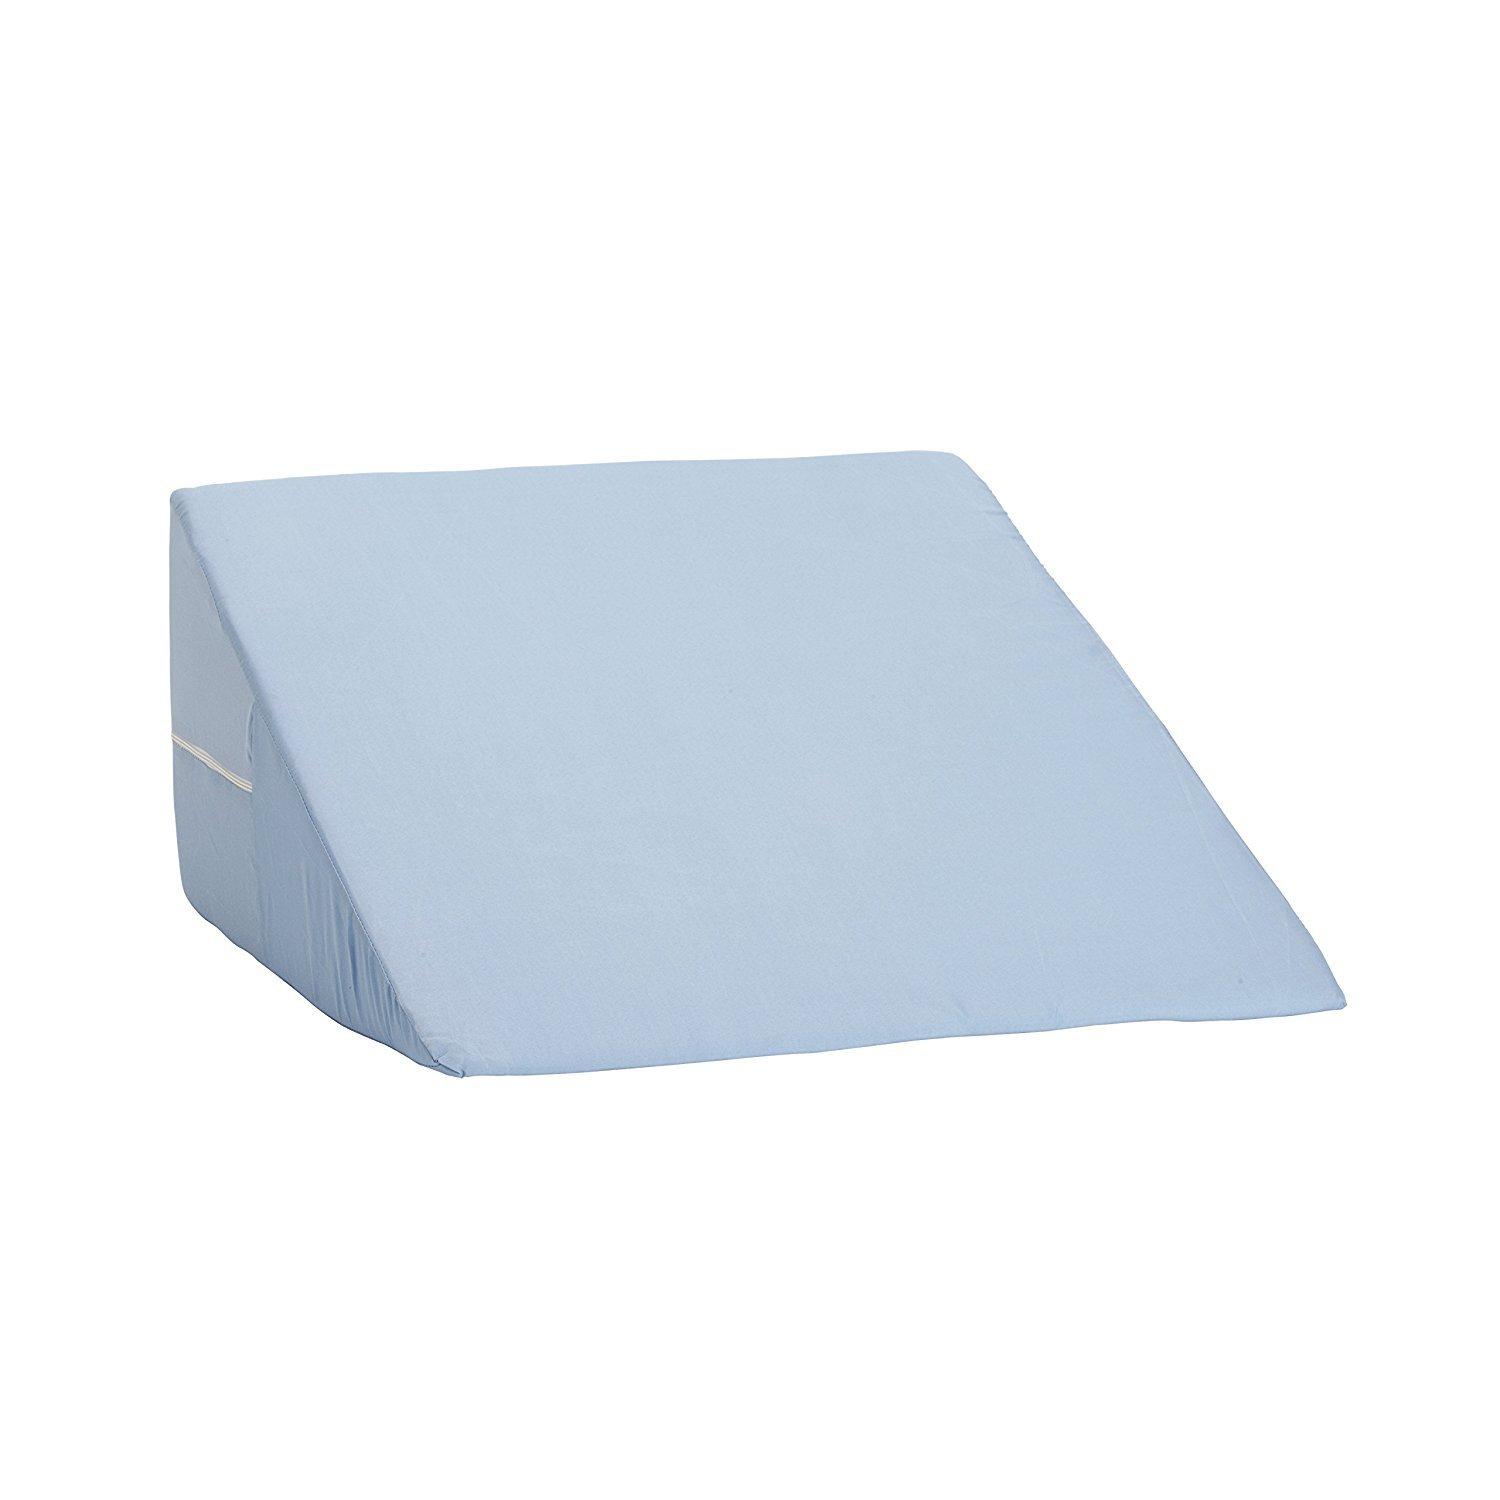 DRIVE Bed Wedge 12